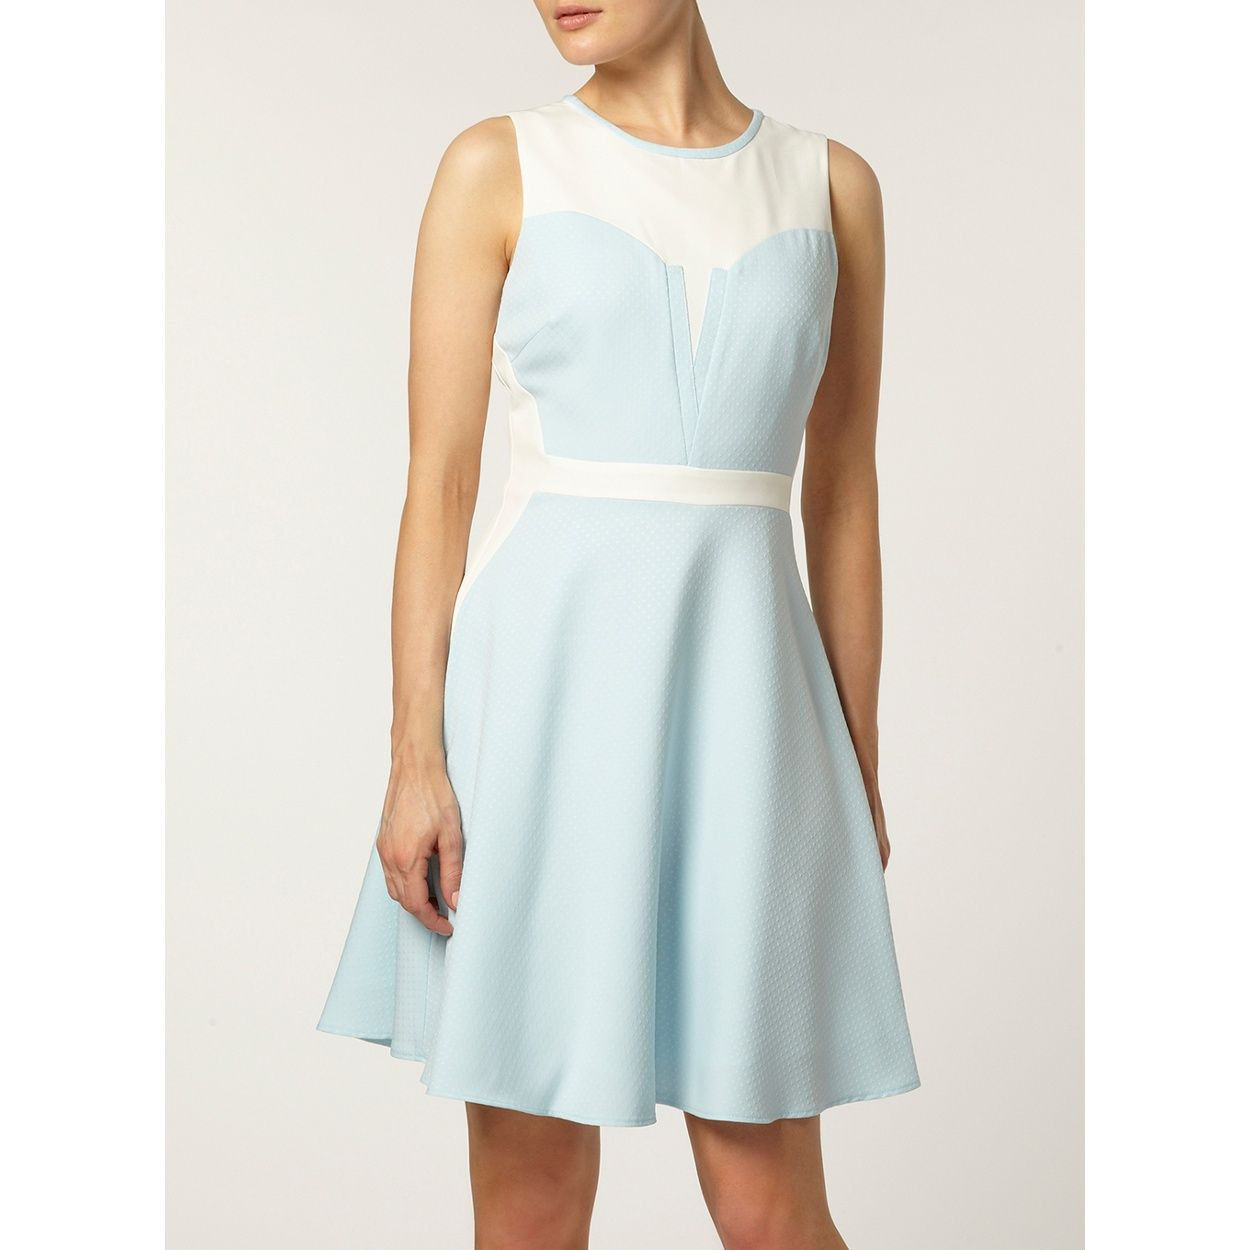 Dorothy perkins blue sweetheart neck dress at debenhams dorothy perkins blue sweetheart neck dress at debenhams debenhamsbridesmaid dresses ombrellifo Image collections